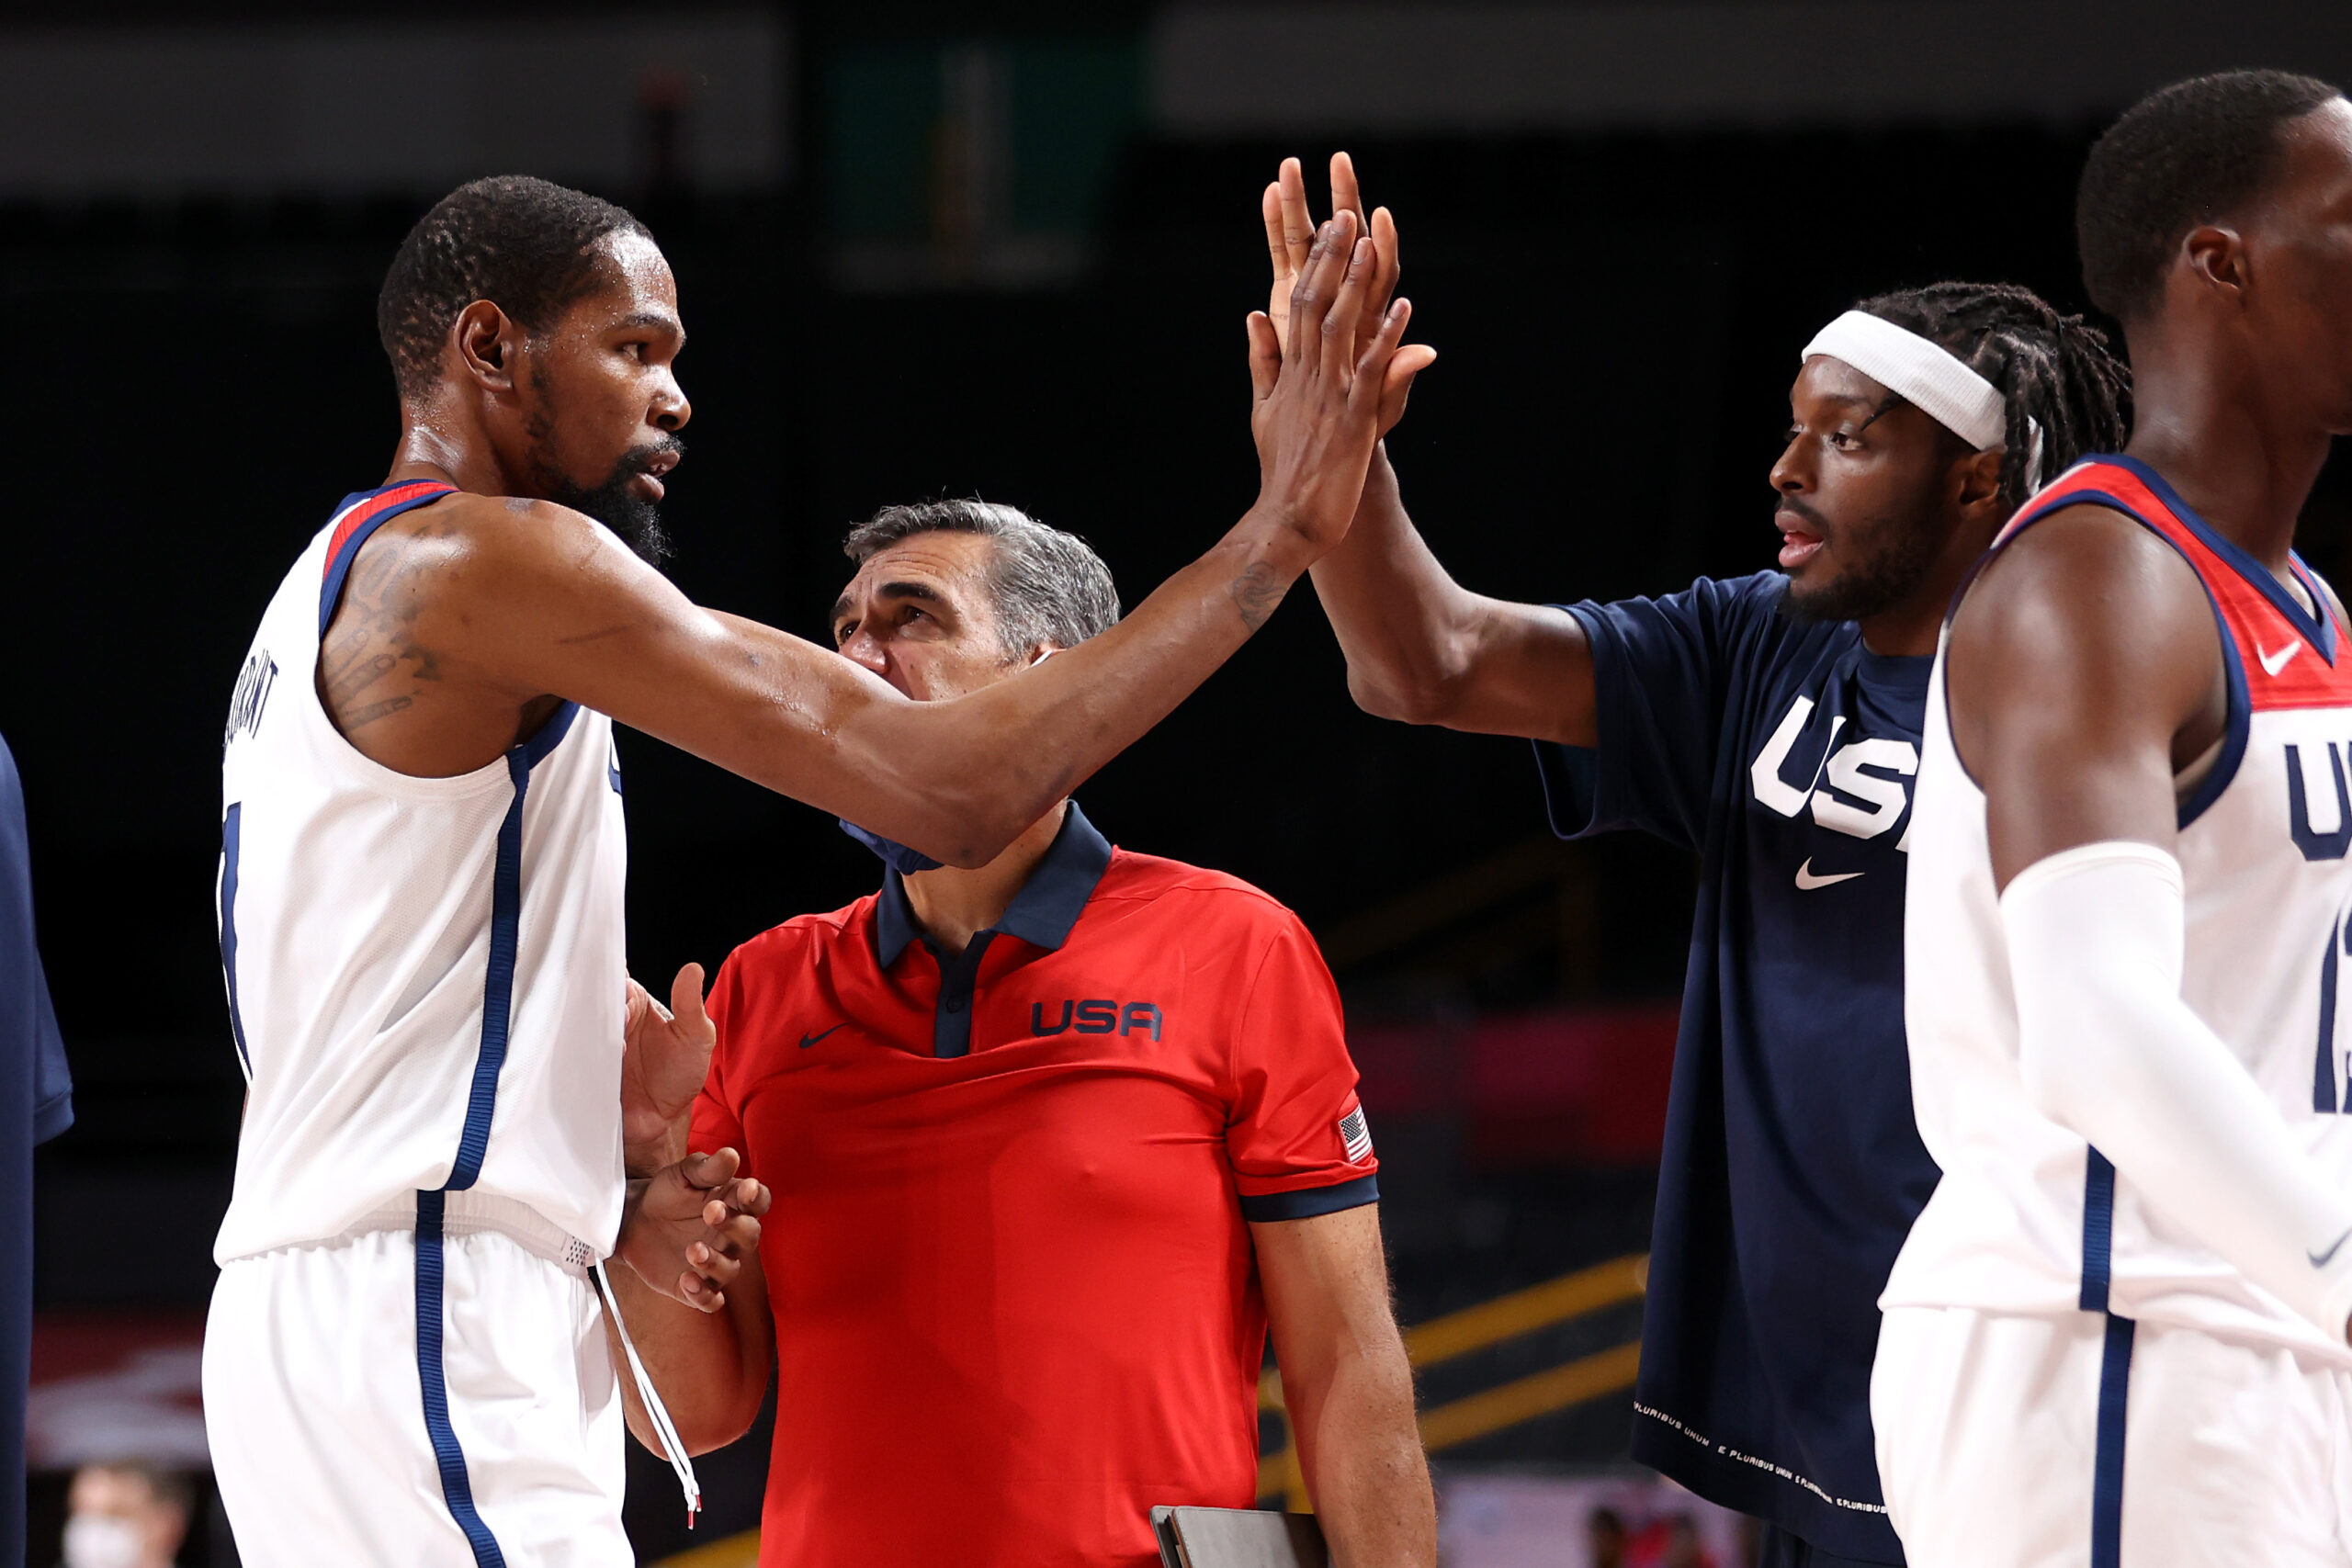 Olympic Men's Basketball Recap: US joins Italy, France, Australia in advancing to quarterfinals